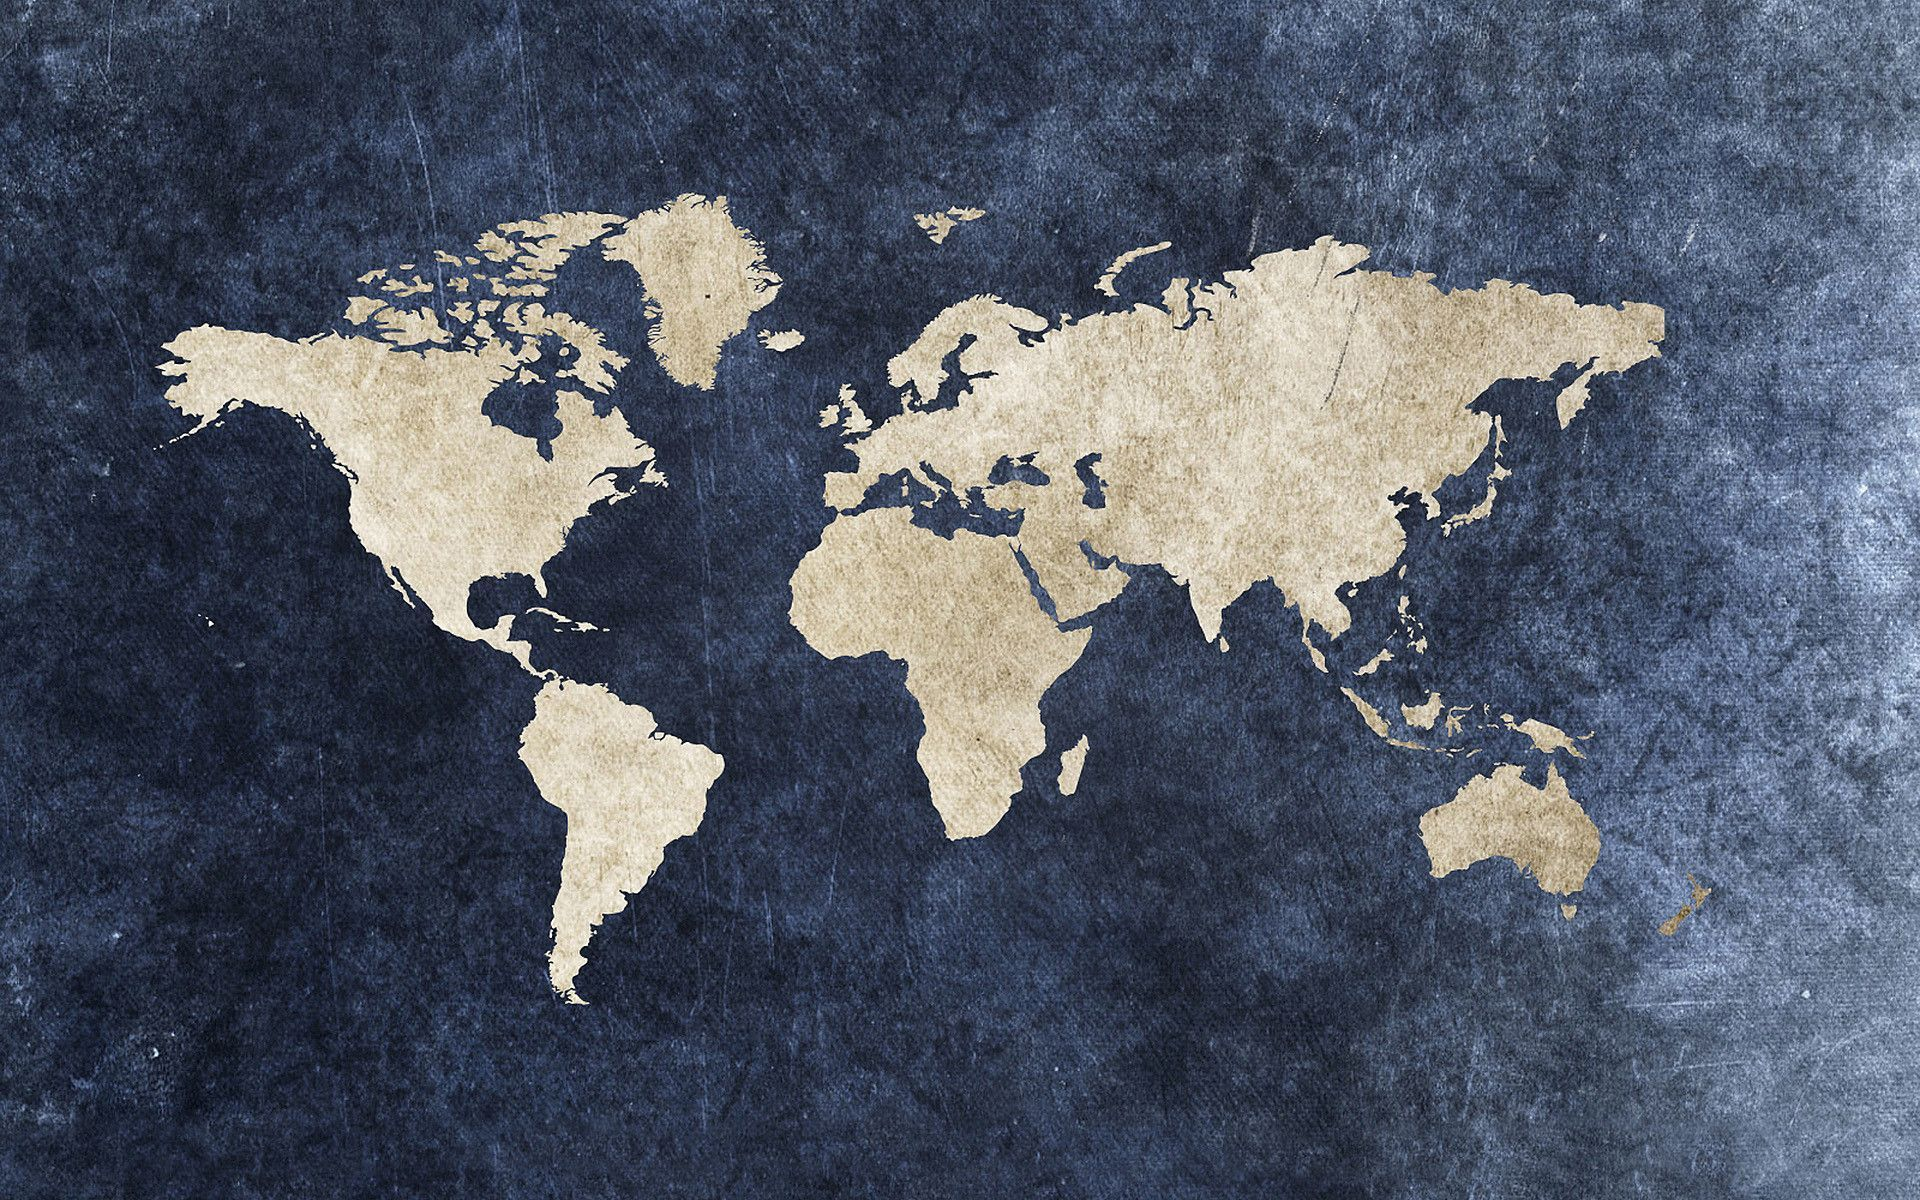 World Map Wallpapers - Top Free World Map Backgrounds ...